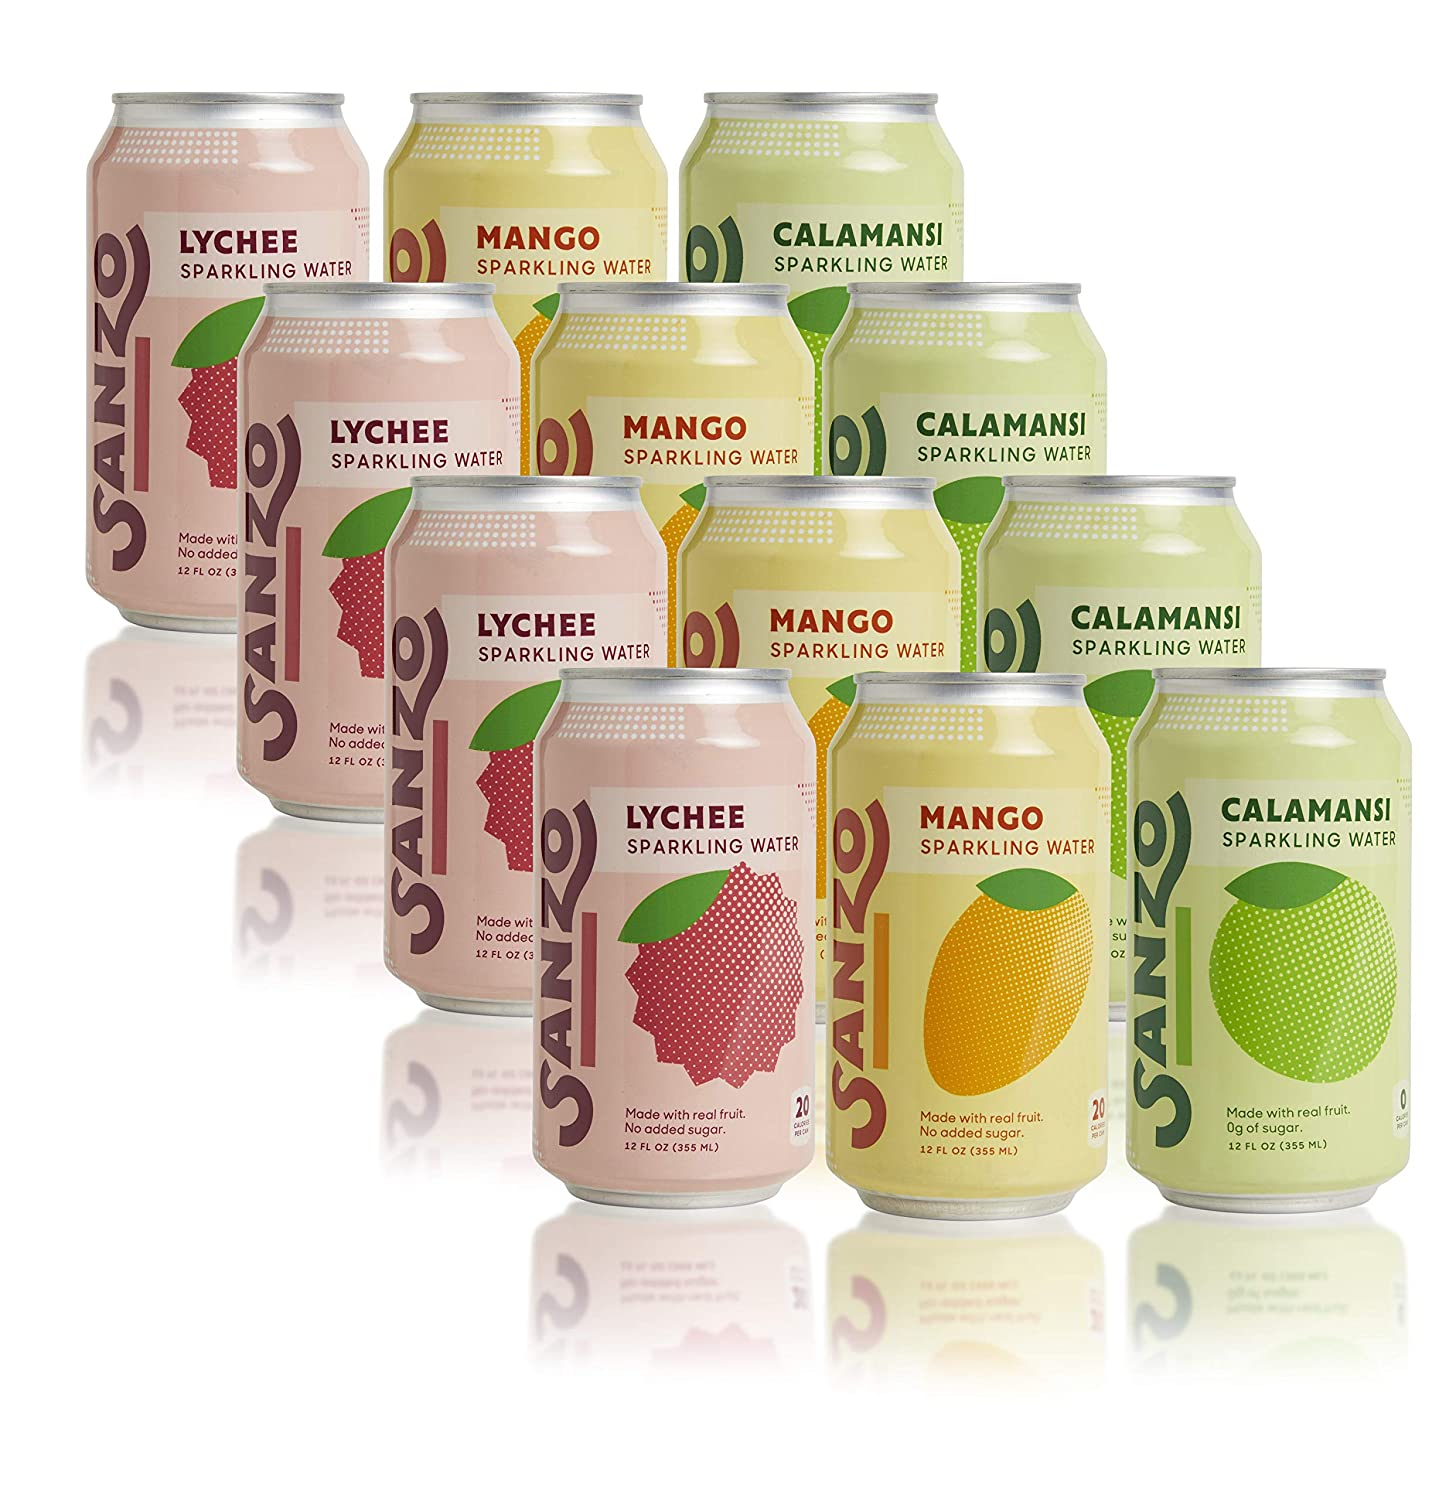 Sanzo Flavored Sparkling Water Variety Pack - 12-Pack - Calamansi (Lime), Lychee (Berry) and Mango (Alphonso) - Made with Real Fruit and Sugar-Free - Non-GMO, Gluten-Free and Vegan - 12 Fl Oz Cans